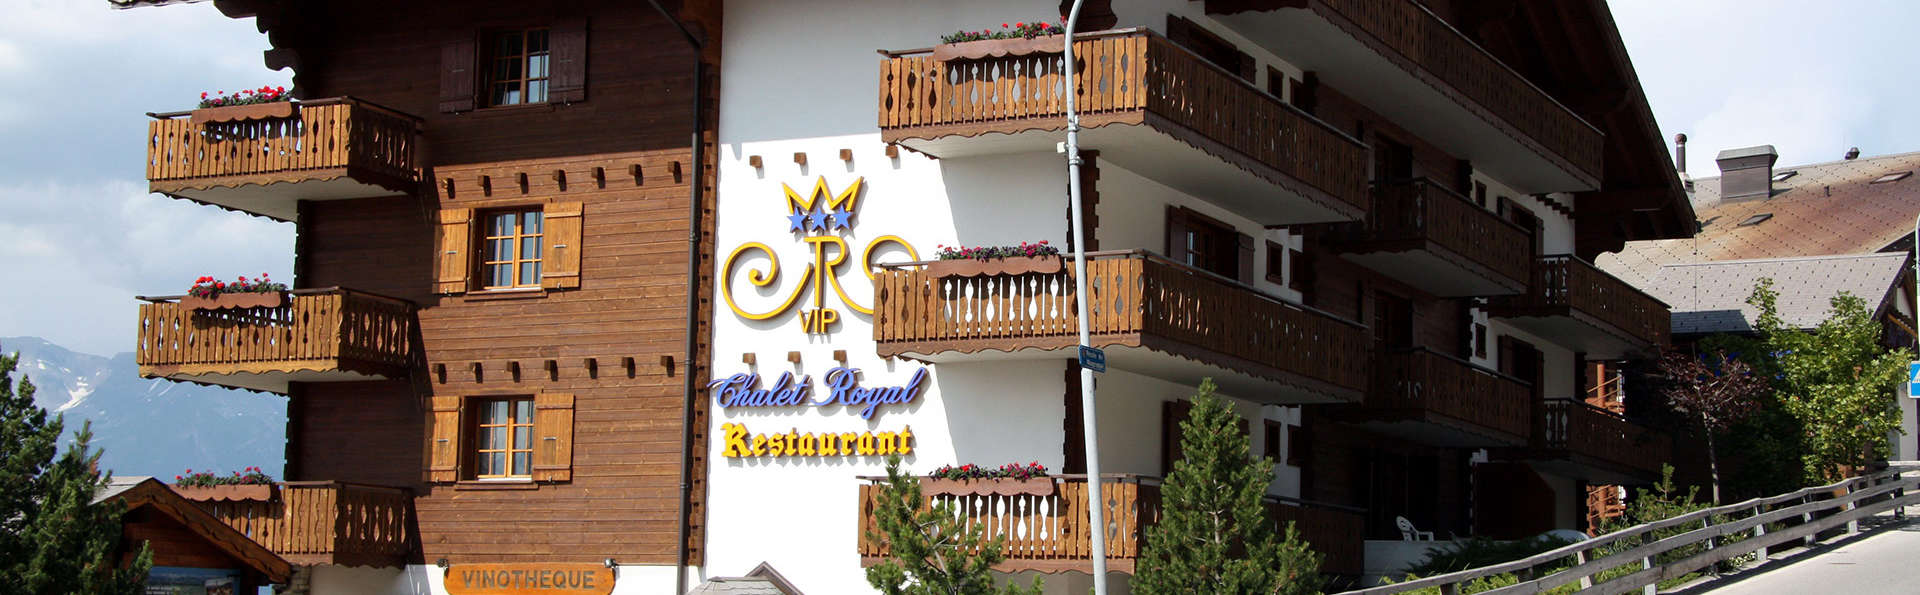 Chalet Royal - Edit_Front2.jpg